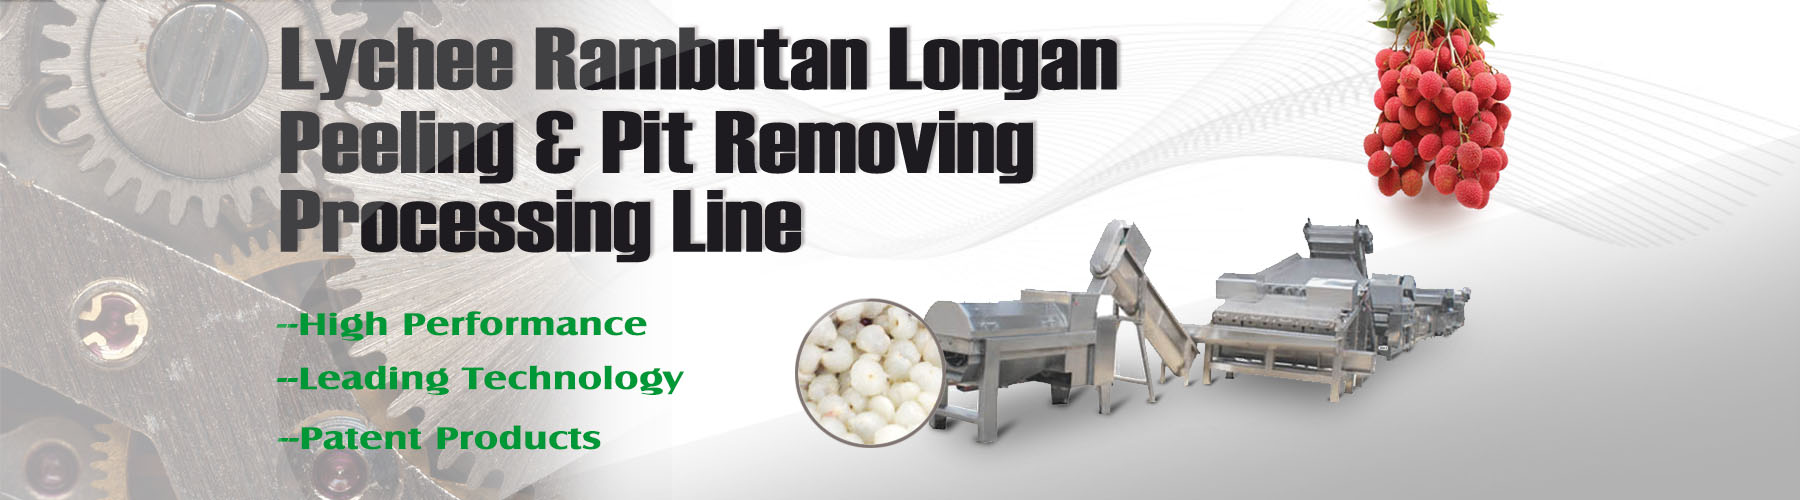 Lychee peeling and pit removing processing line--001